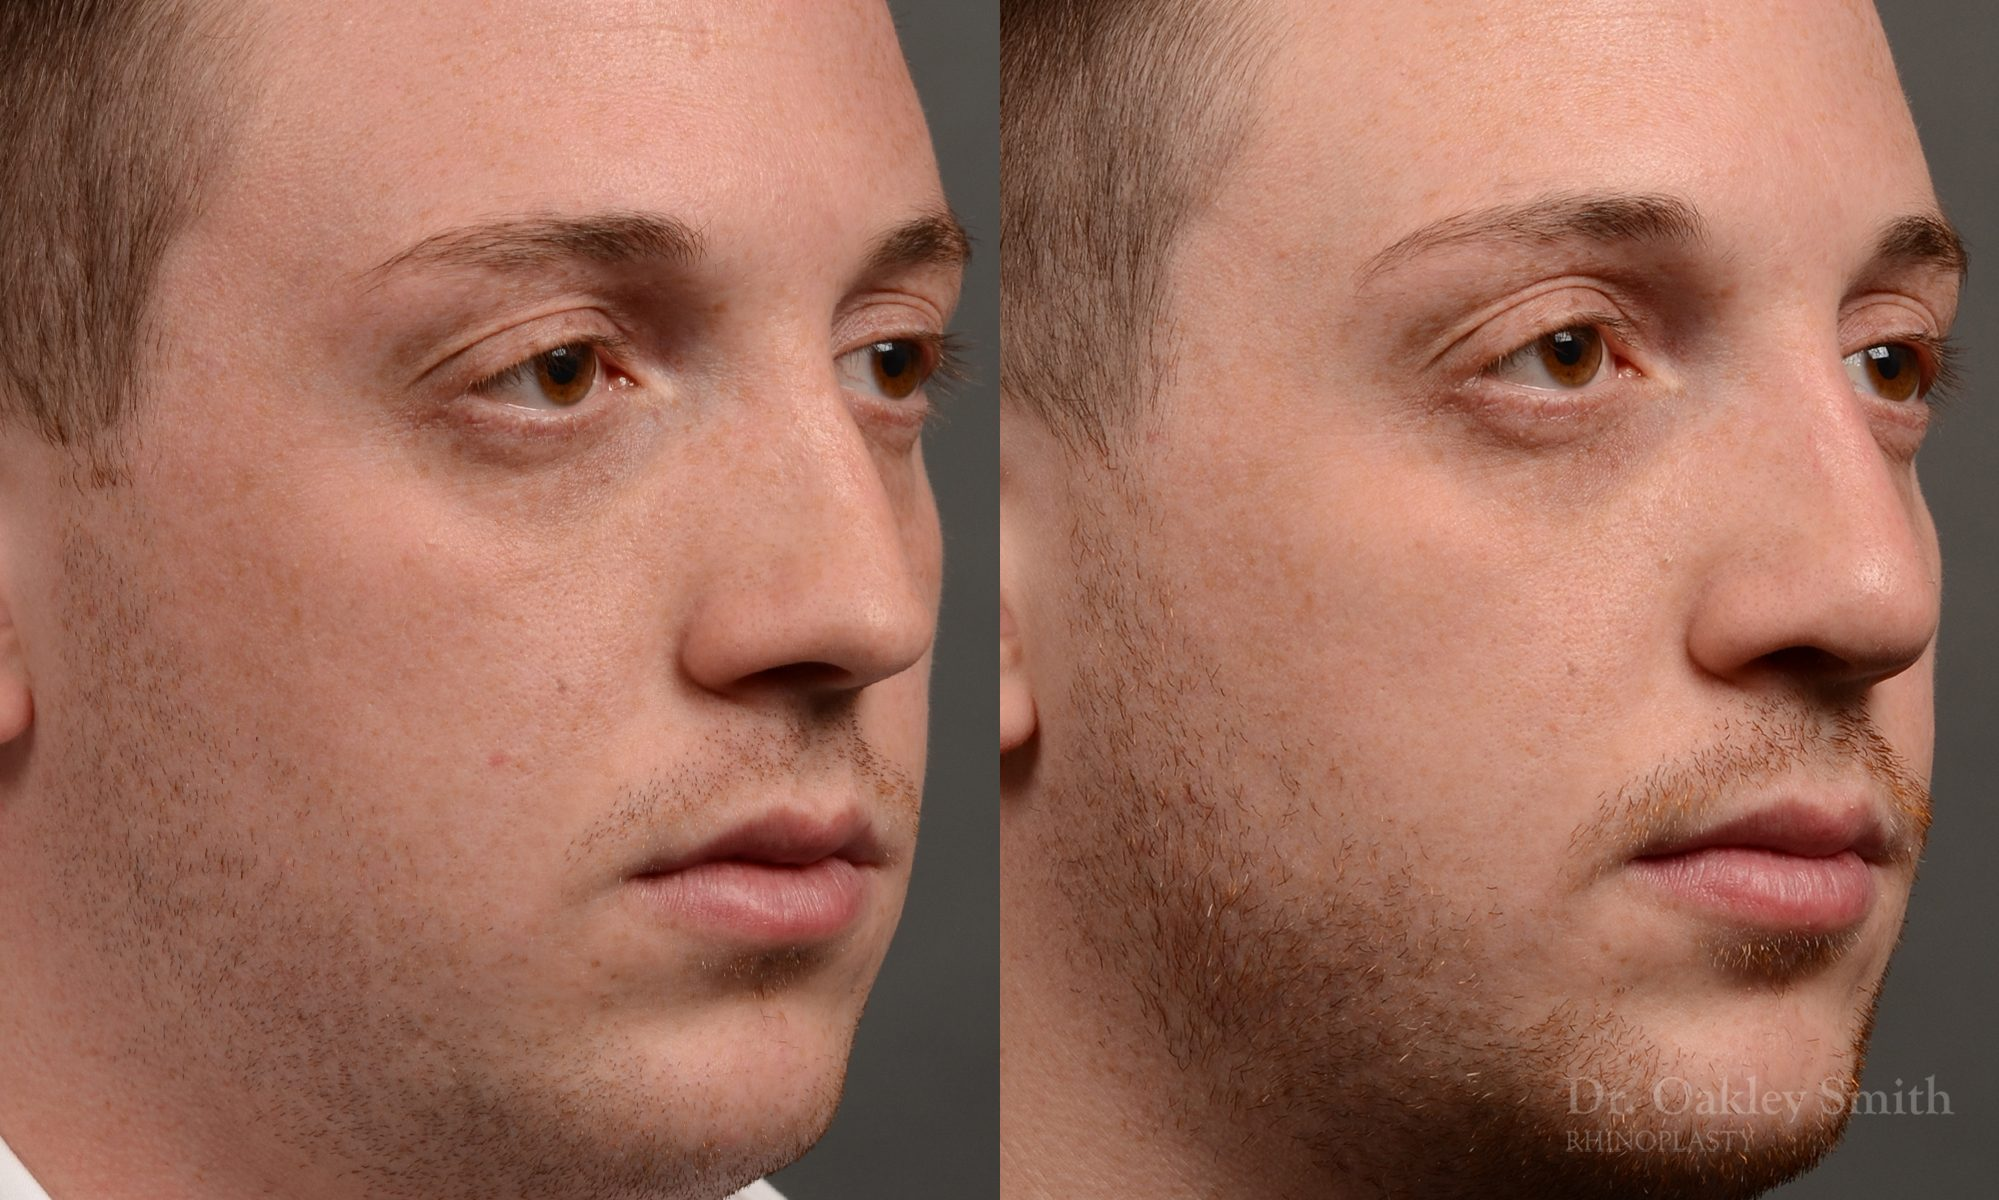 Male rhinoplasty to straigthen nose